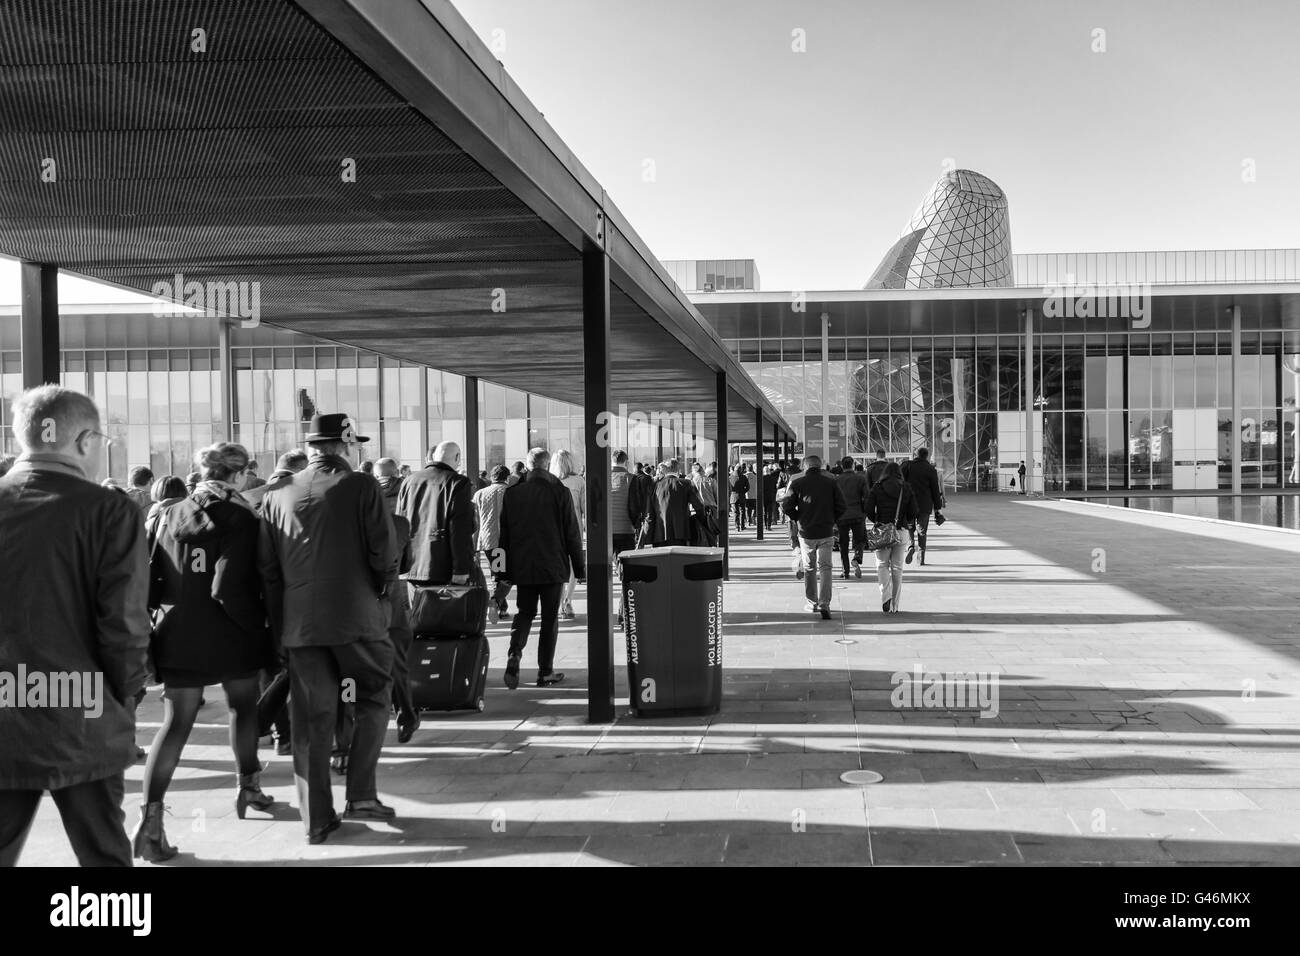 People come in new buildings fairs in Milan, italy. - Stock Image